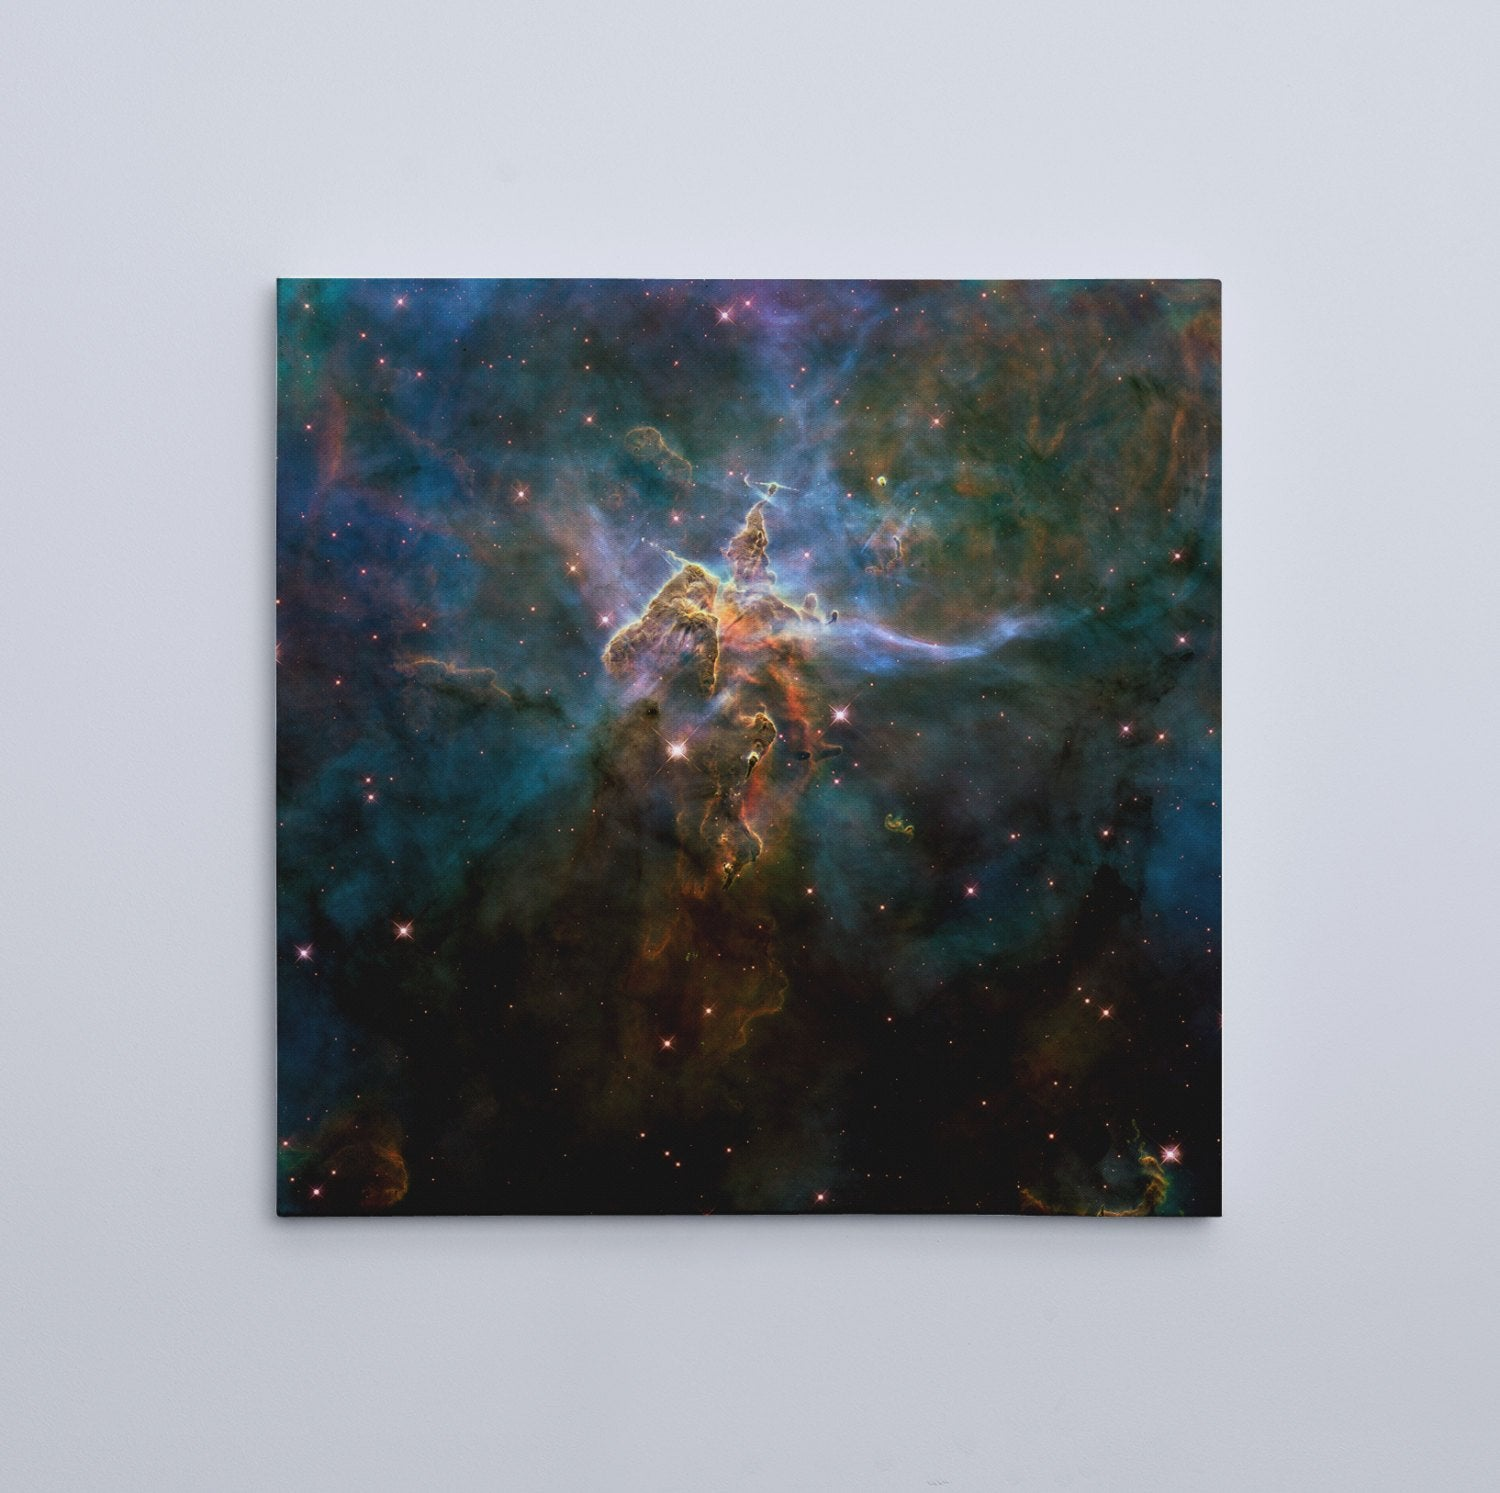 "Mystic Mountain, HD Hubble Image (20"" x 20"") - Canvas Wrap Print"